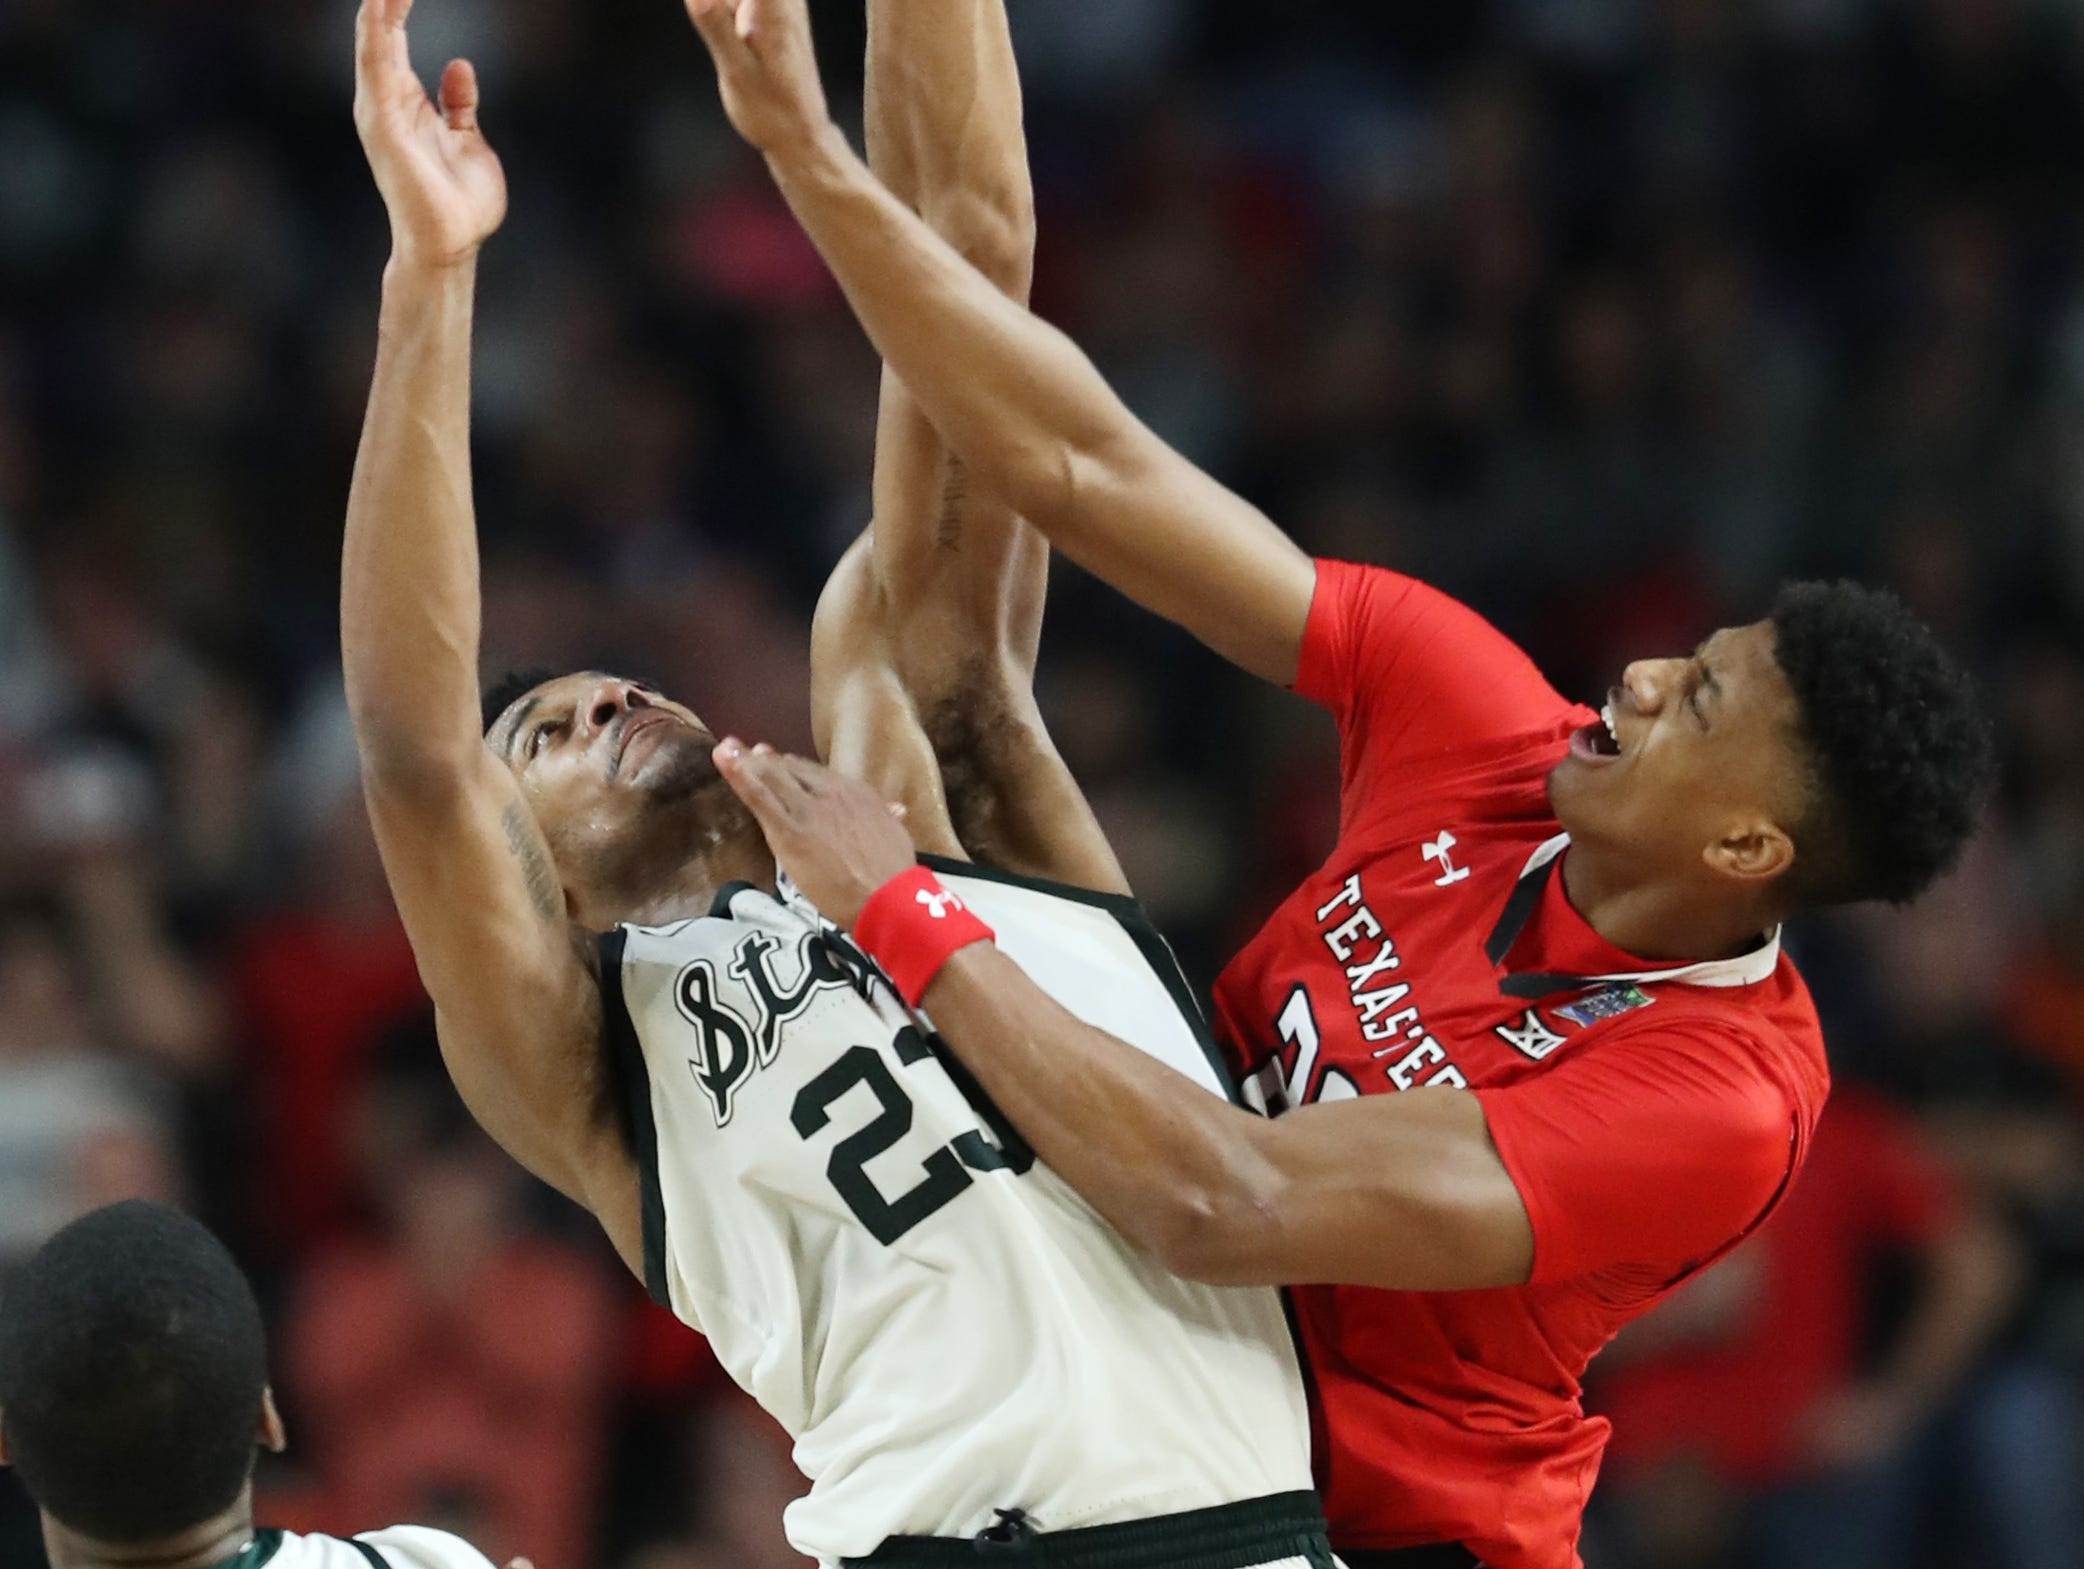 Michigan State forward Xavier Tillman (23) guards Texas Tech guard Jarrett Culver (23) in the second half of the Final Four game at U.S. Bank Stadium in Minneapolis, Minnesota on Saturday, April 06, 2019.